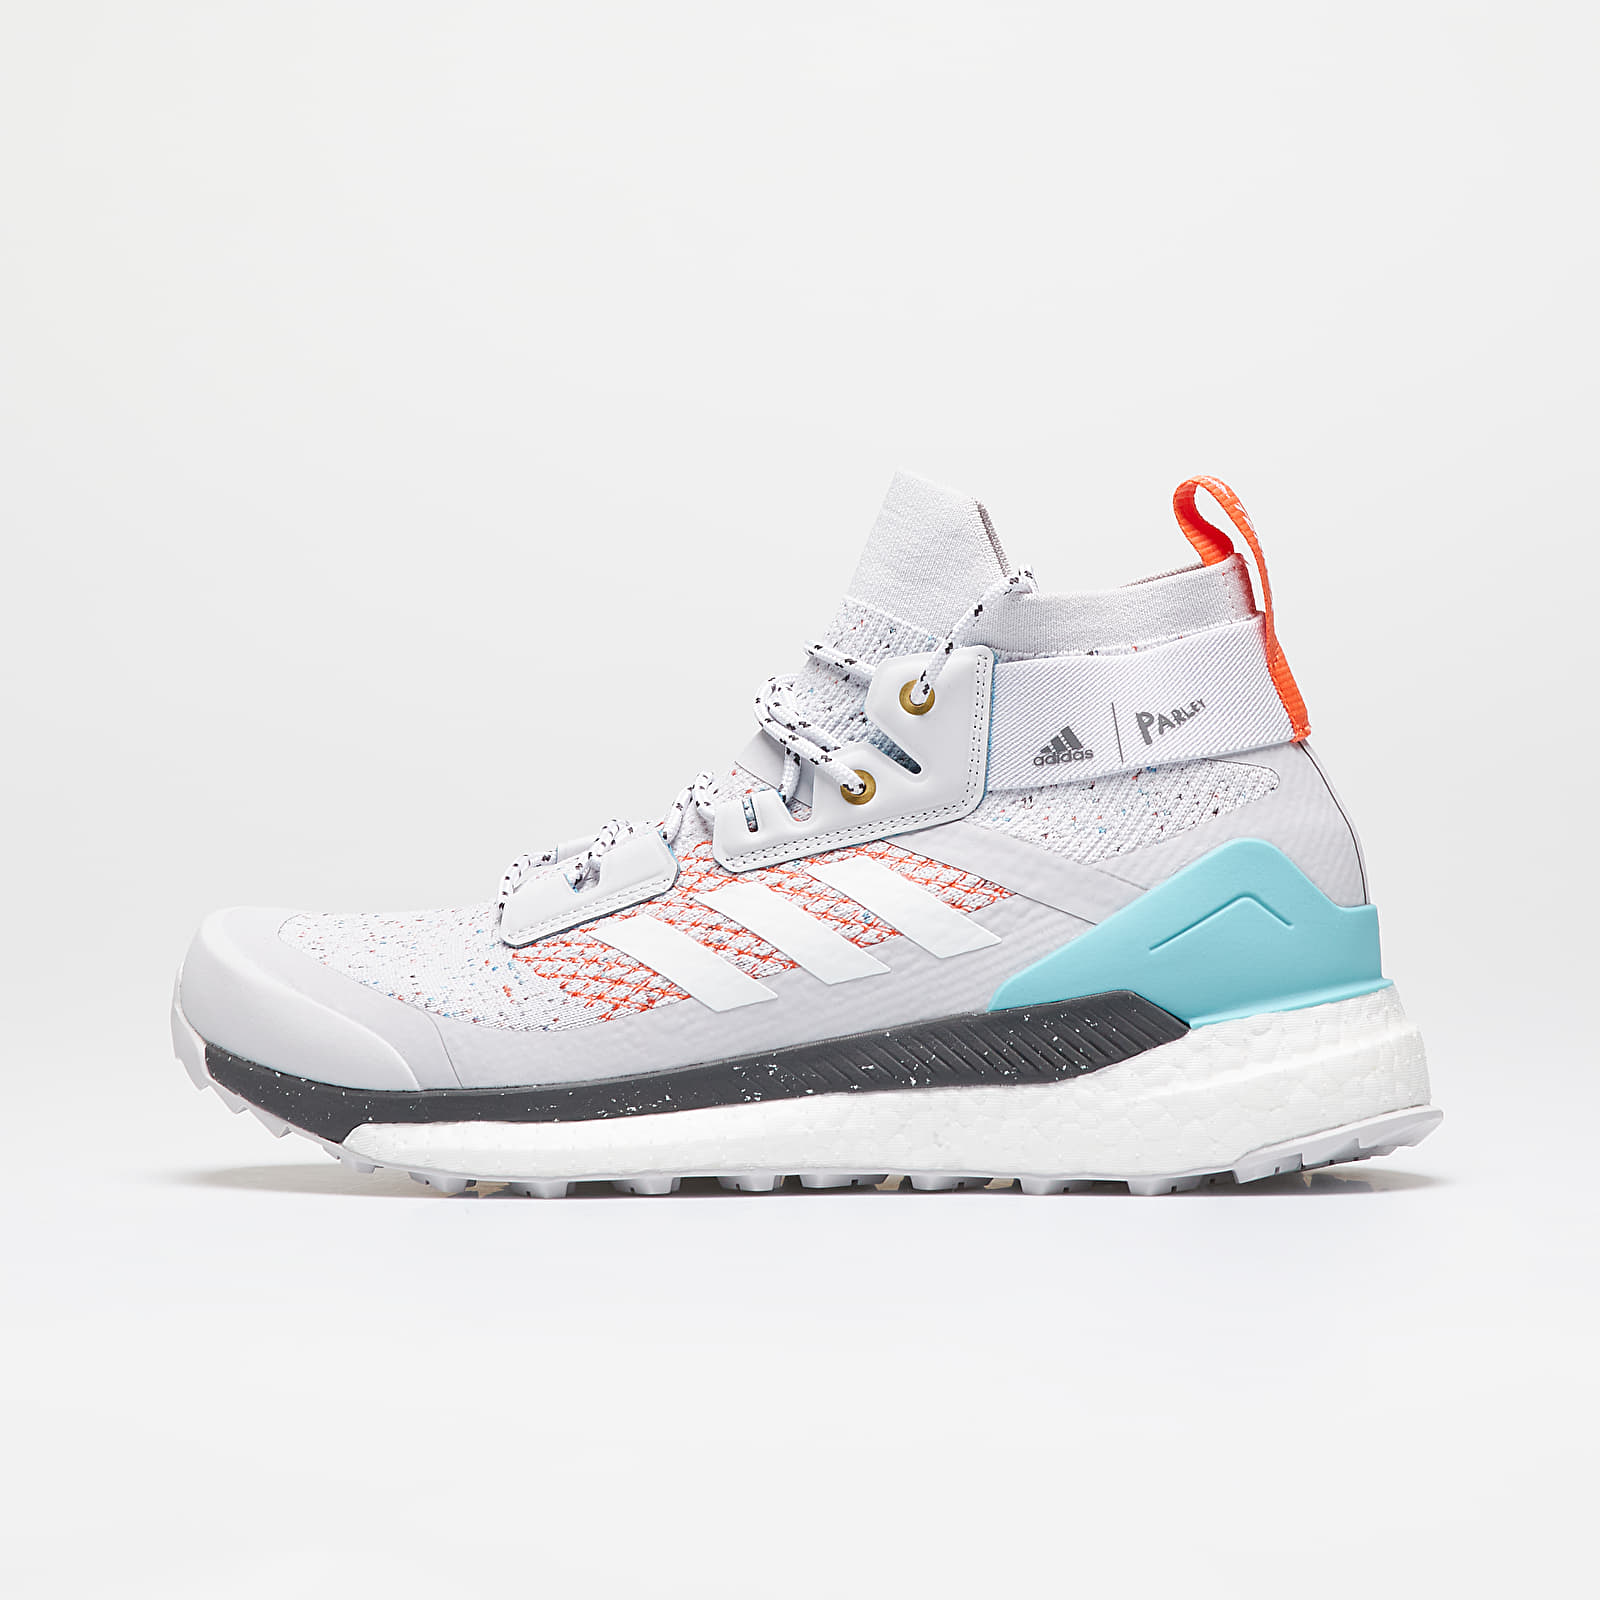 Men's shoes adidas x Parley Terrex Free Hiker Dash Grey/ Ftw White/ True Orange